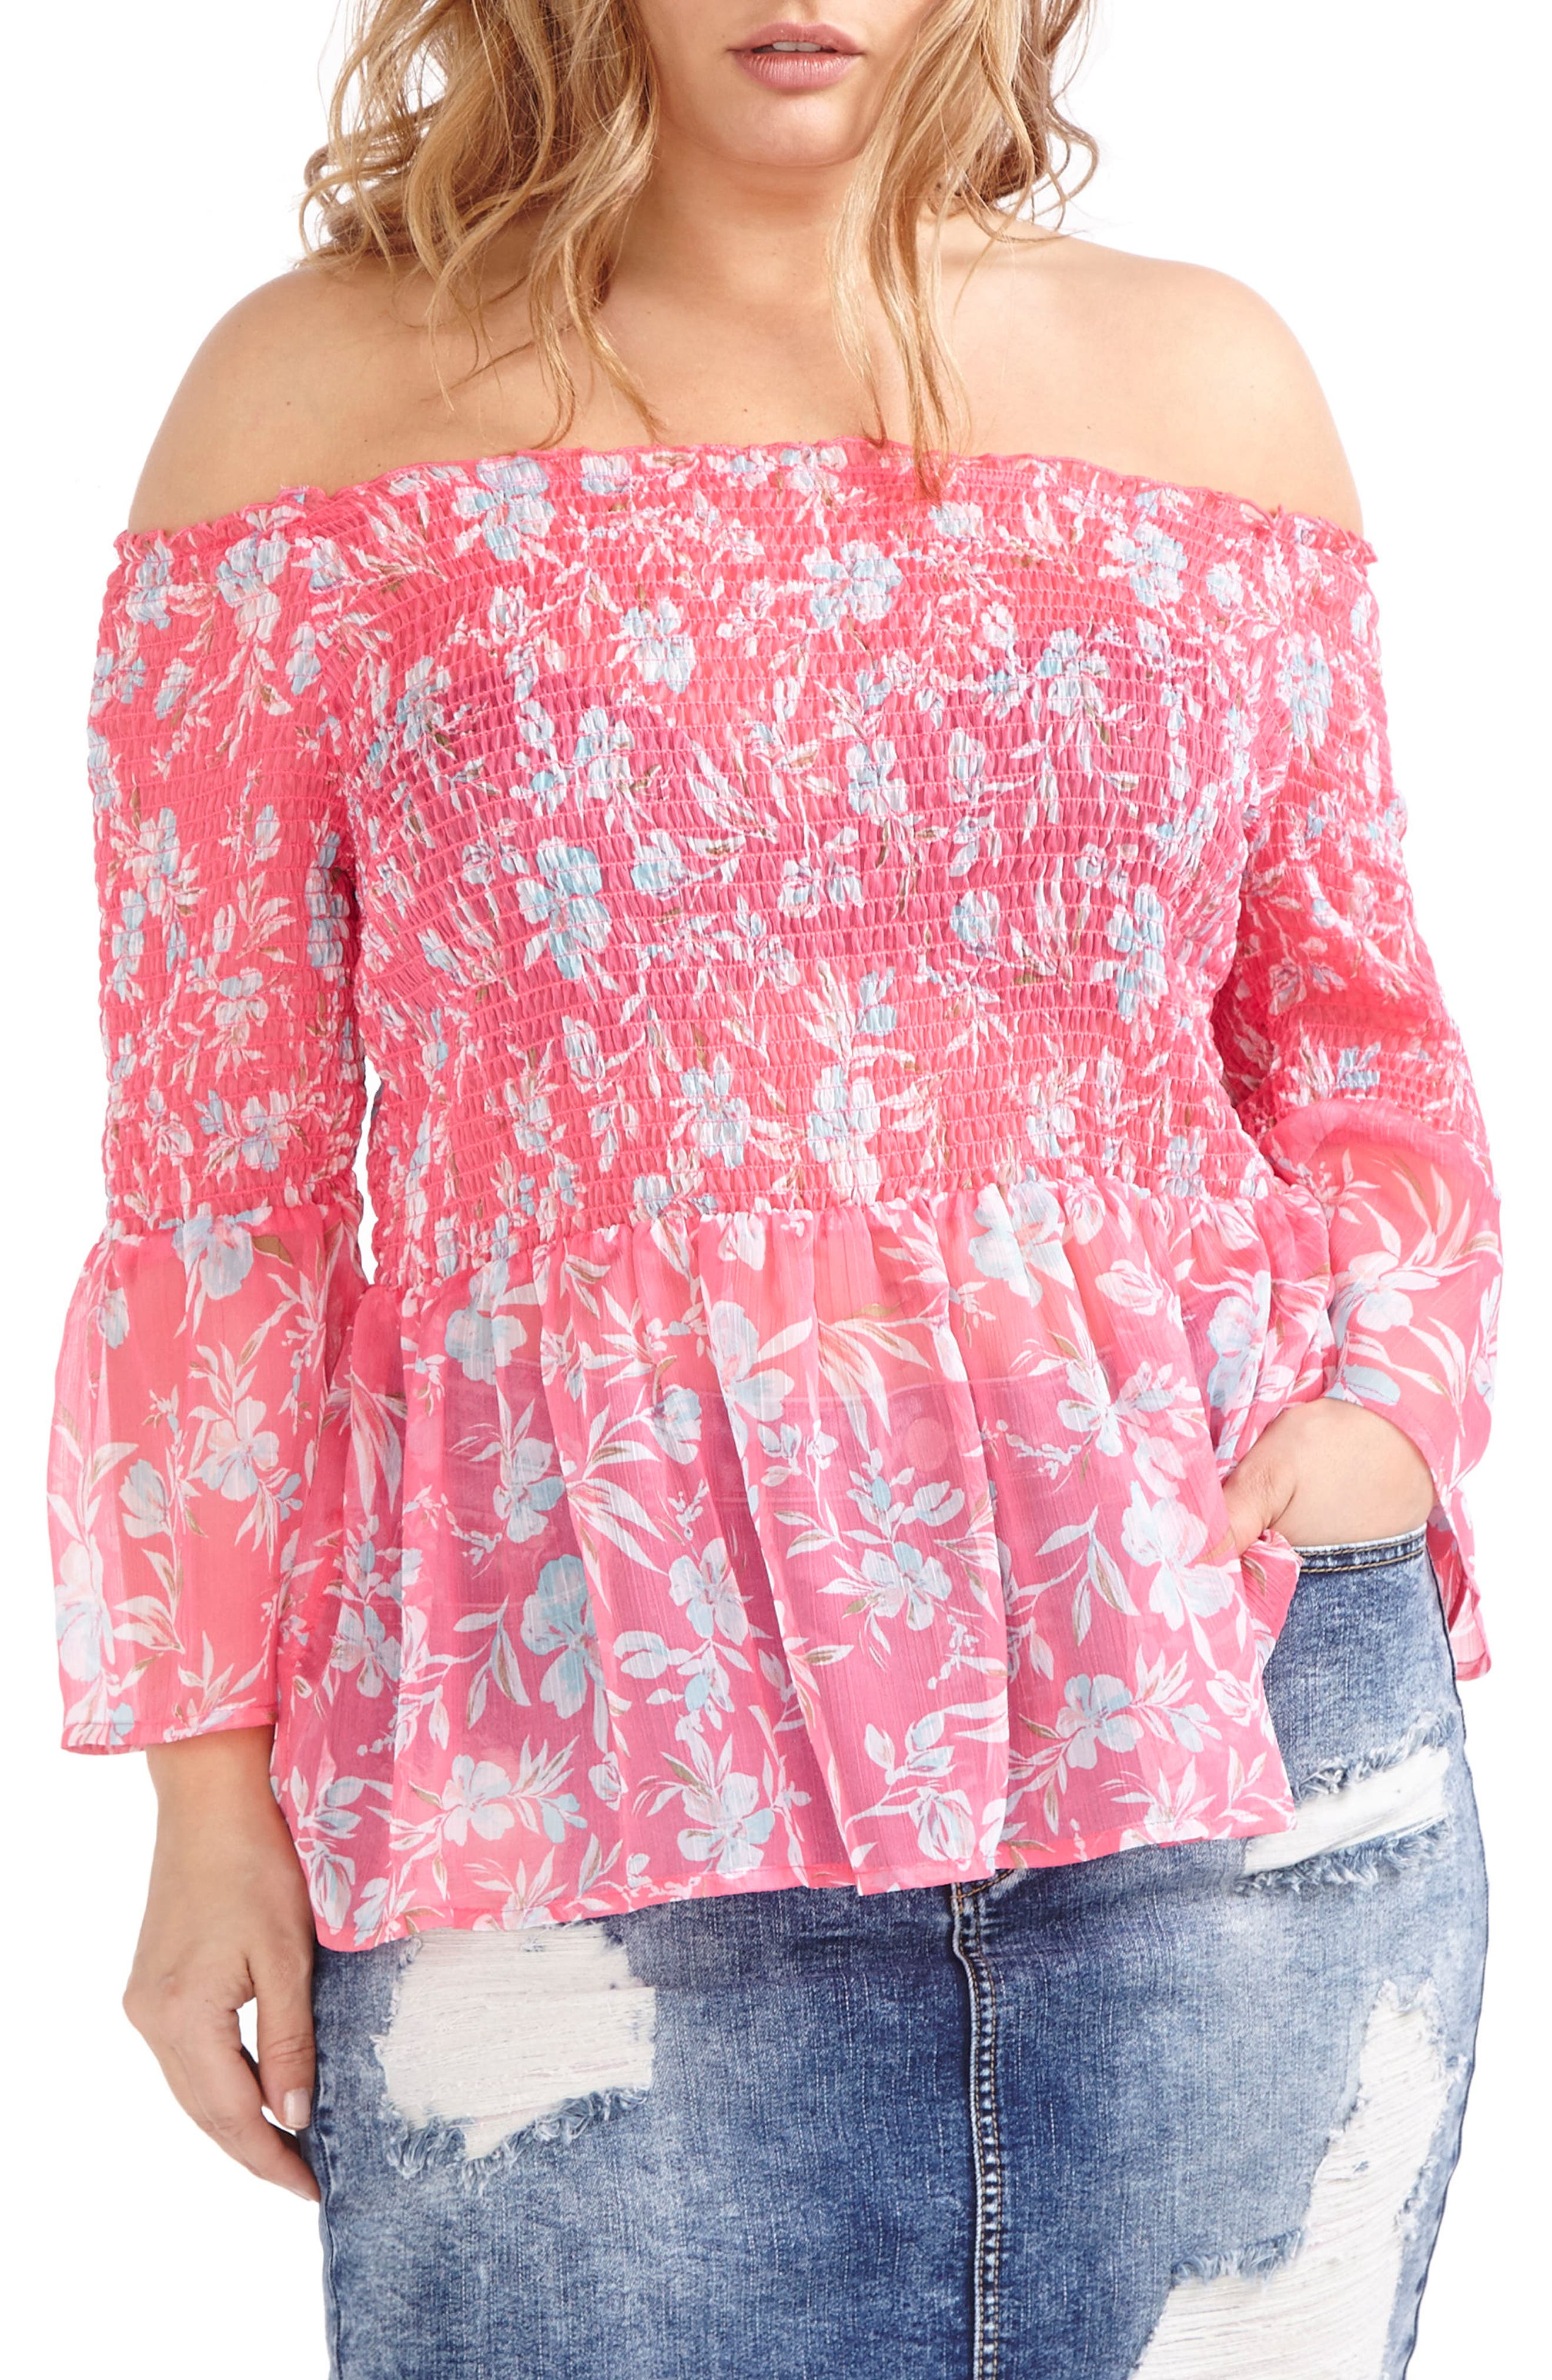 ADDITION ELLE LOVE AND LEGEND Print Chiffon Off the Shoulder Peasant Top (Plus Size)